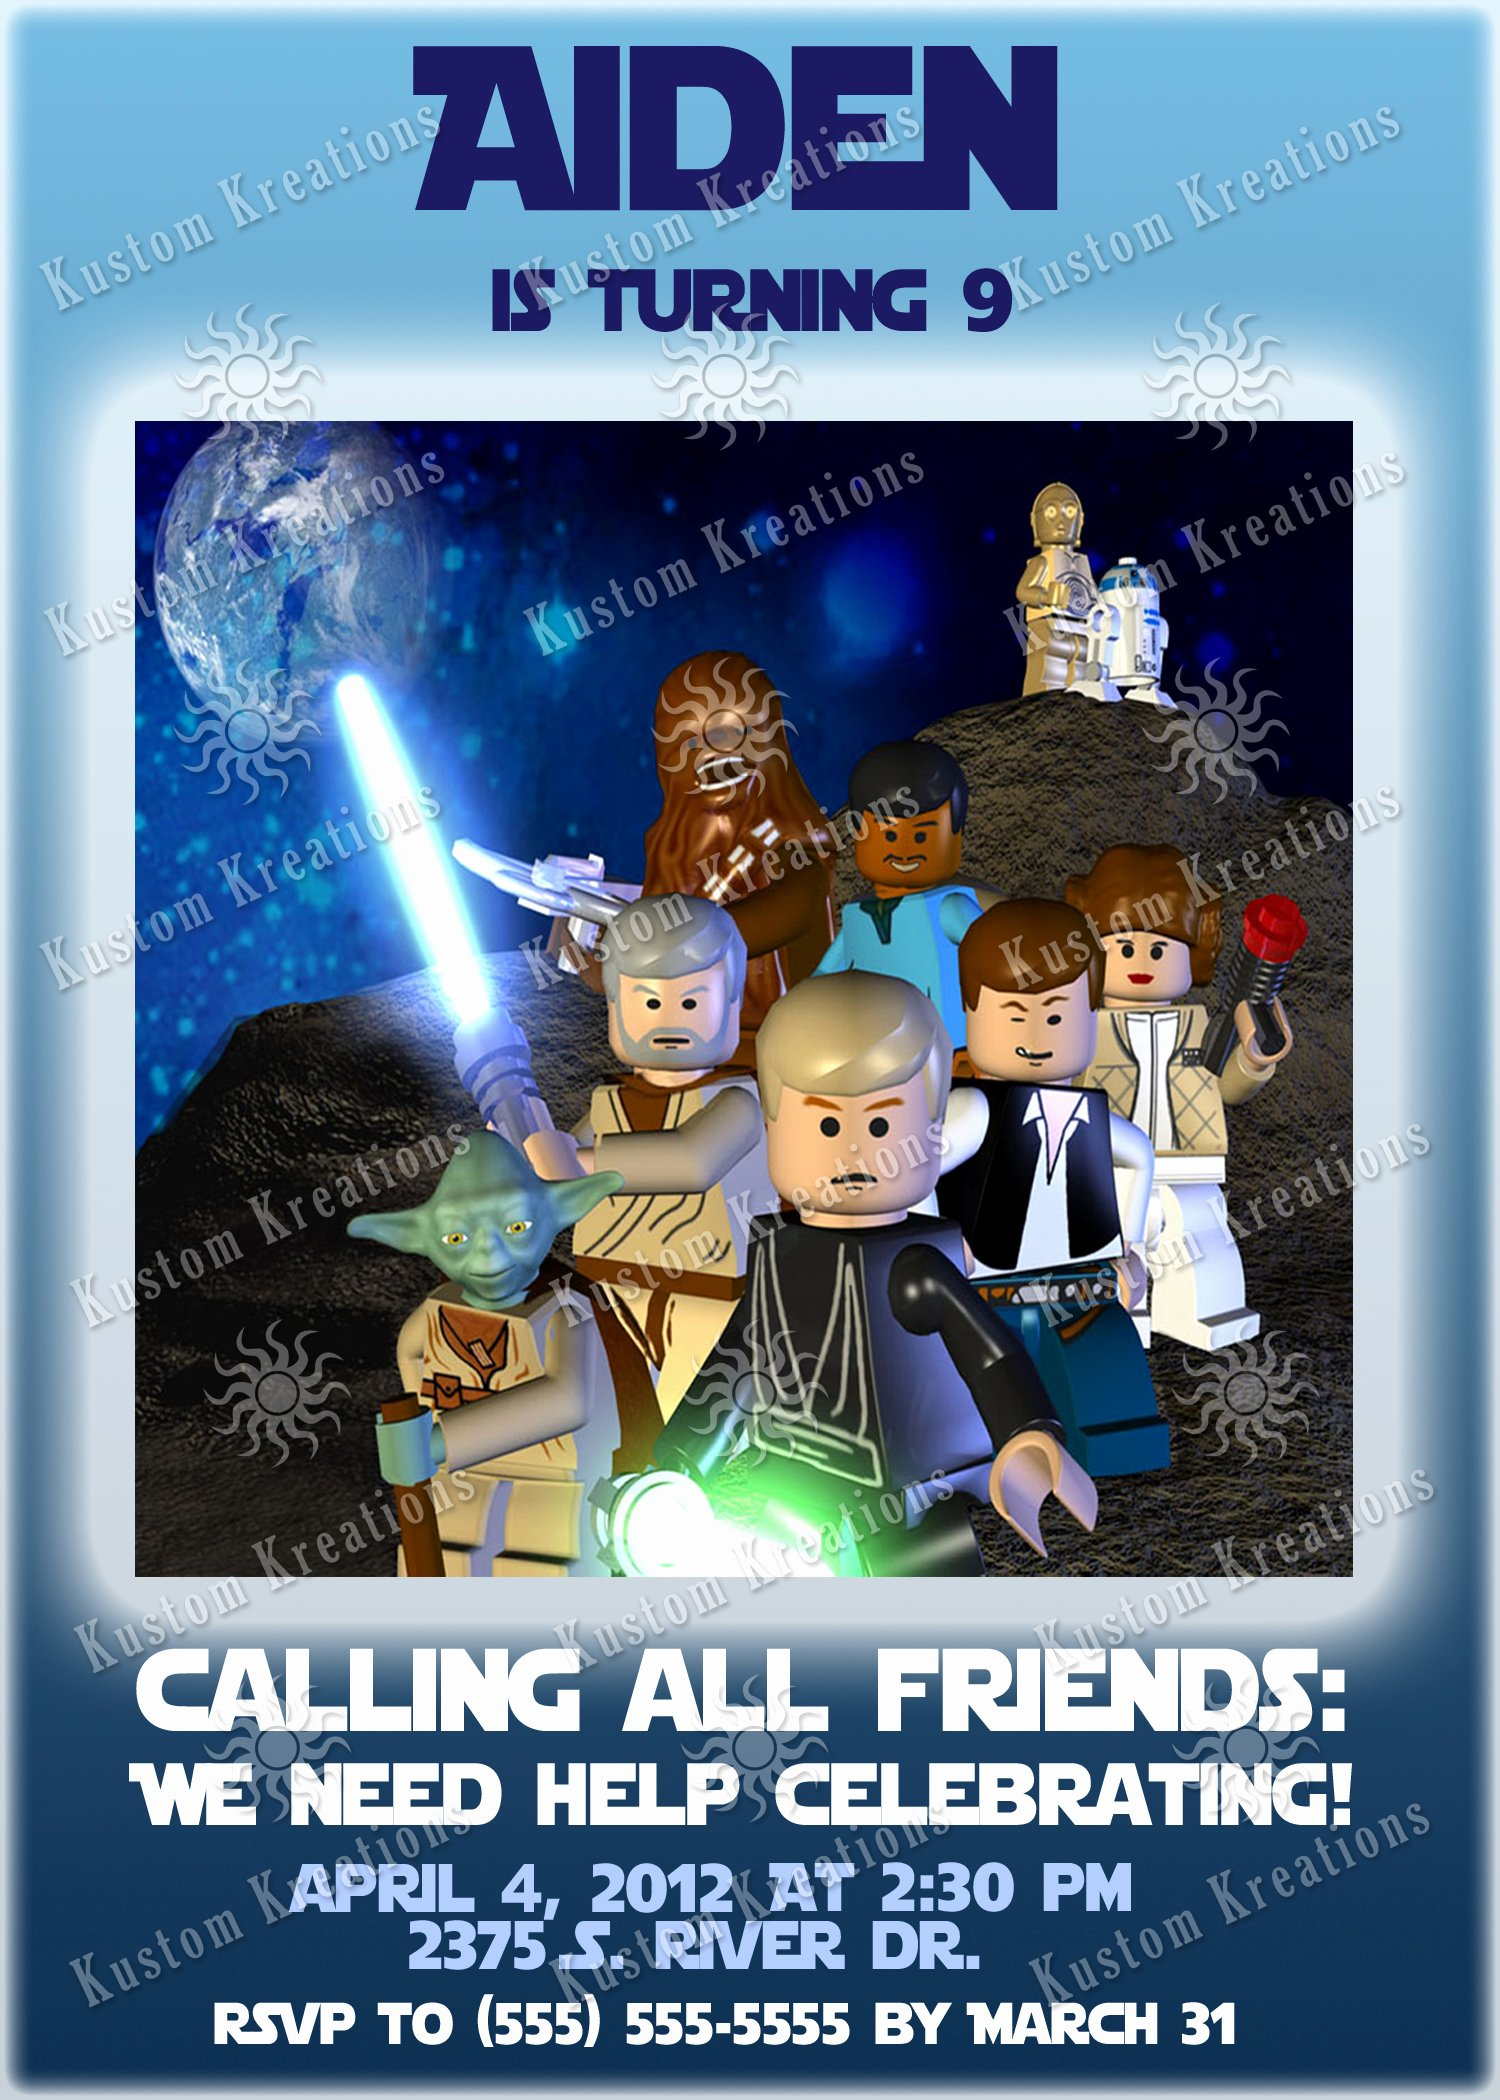 Lego Star Wars Birthday Invitations Inspirational Star Wars Birthday Invitations the force Awakens